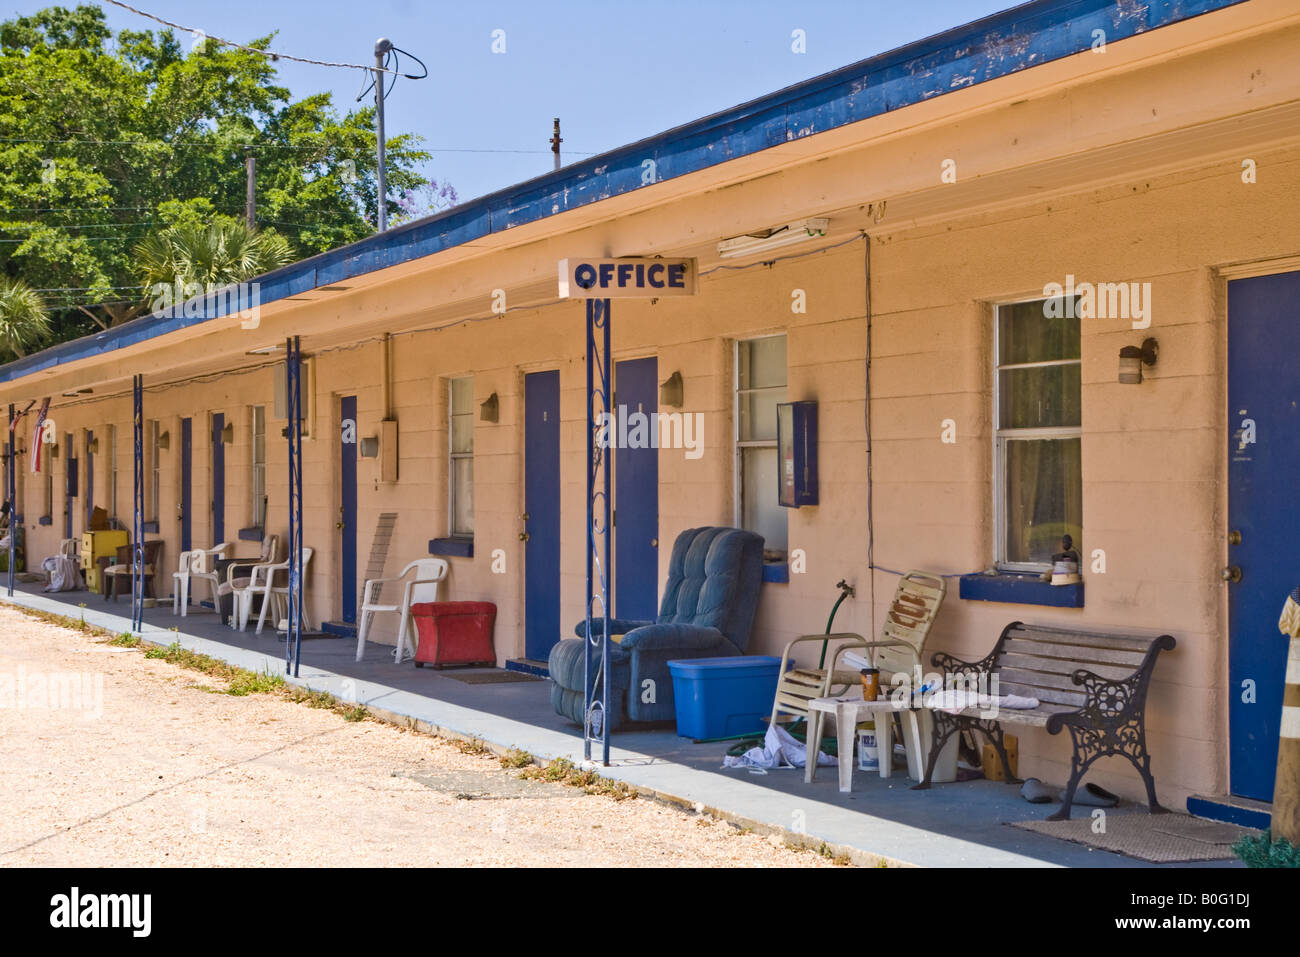 Old motel or travel lodge forced to convert to weekly rent apartment after the highway moved and business fell off - Stock Image